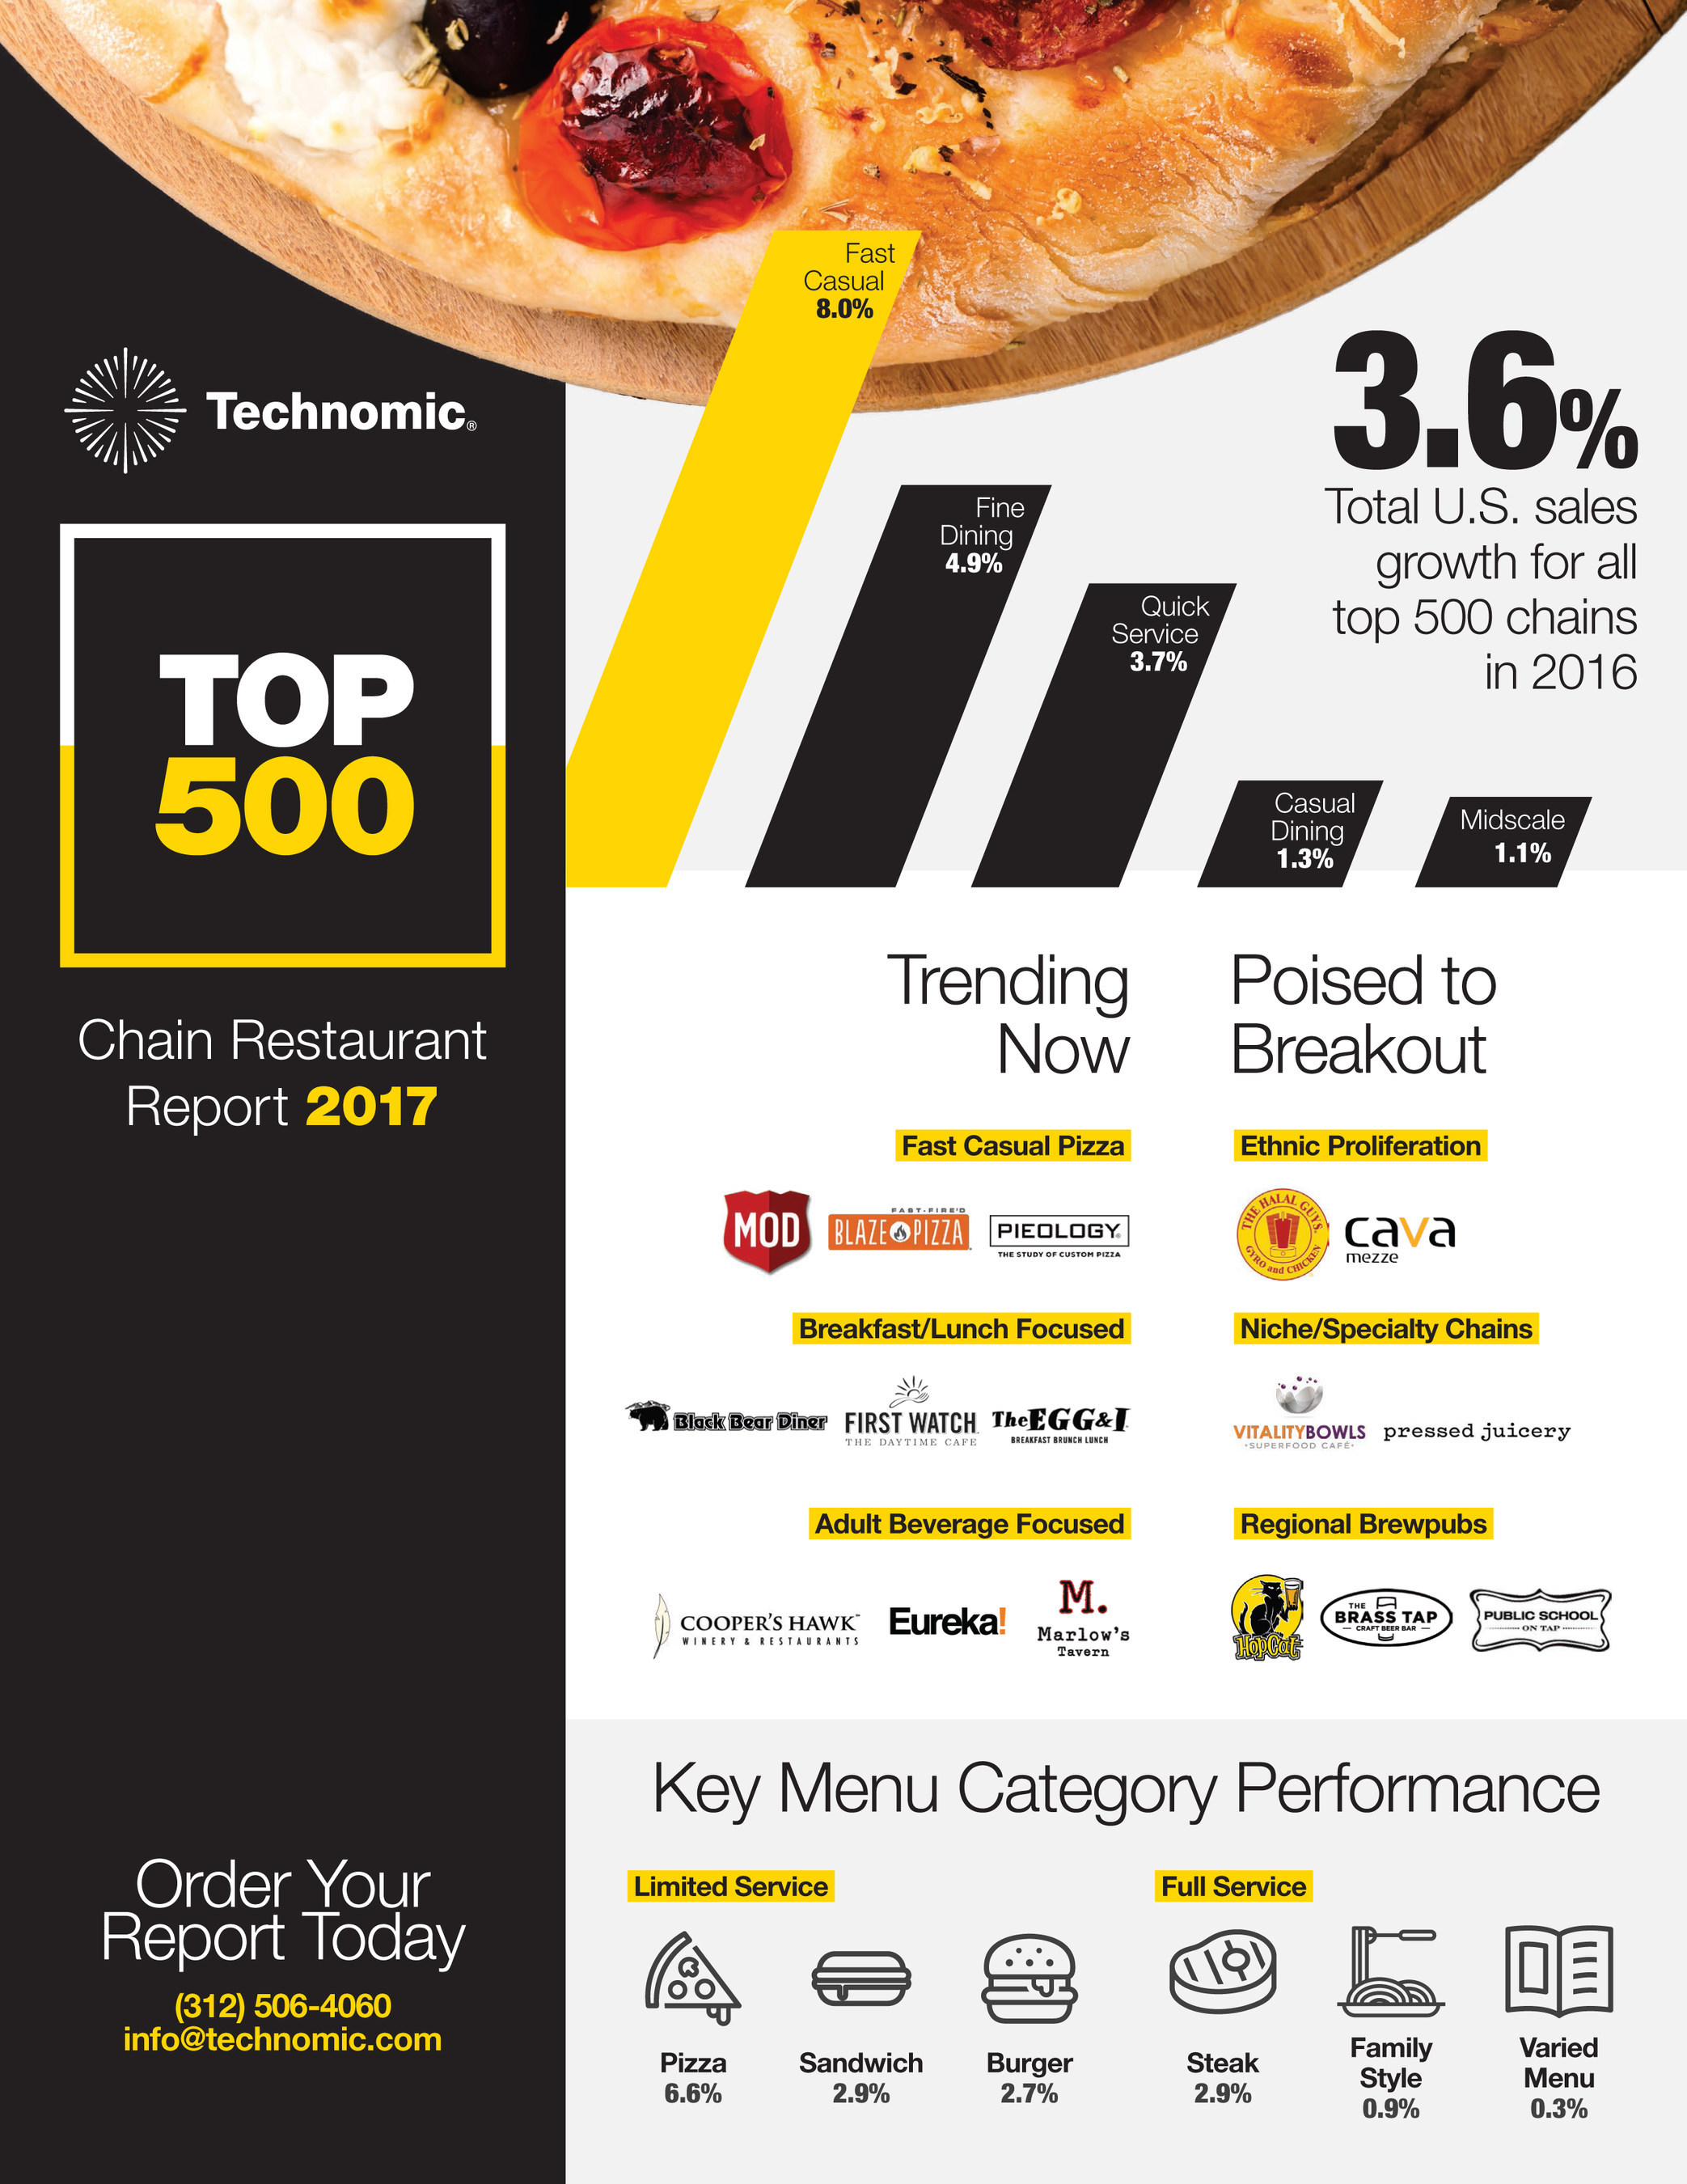 Technomic 2017 Top 500 Chain Restaurant Report